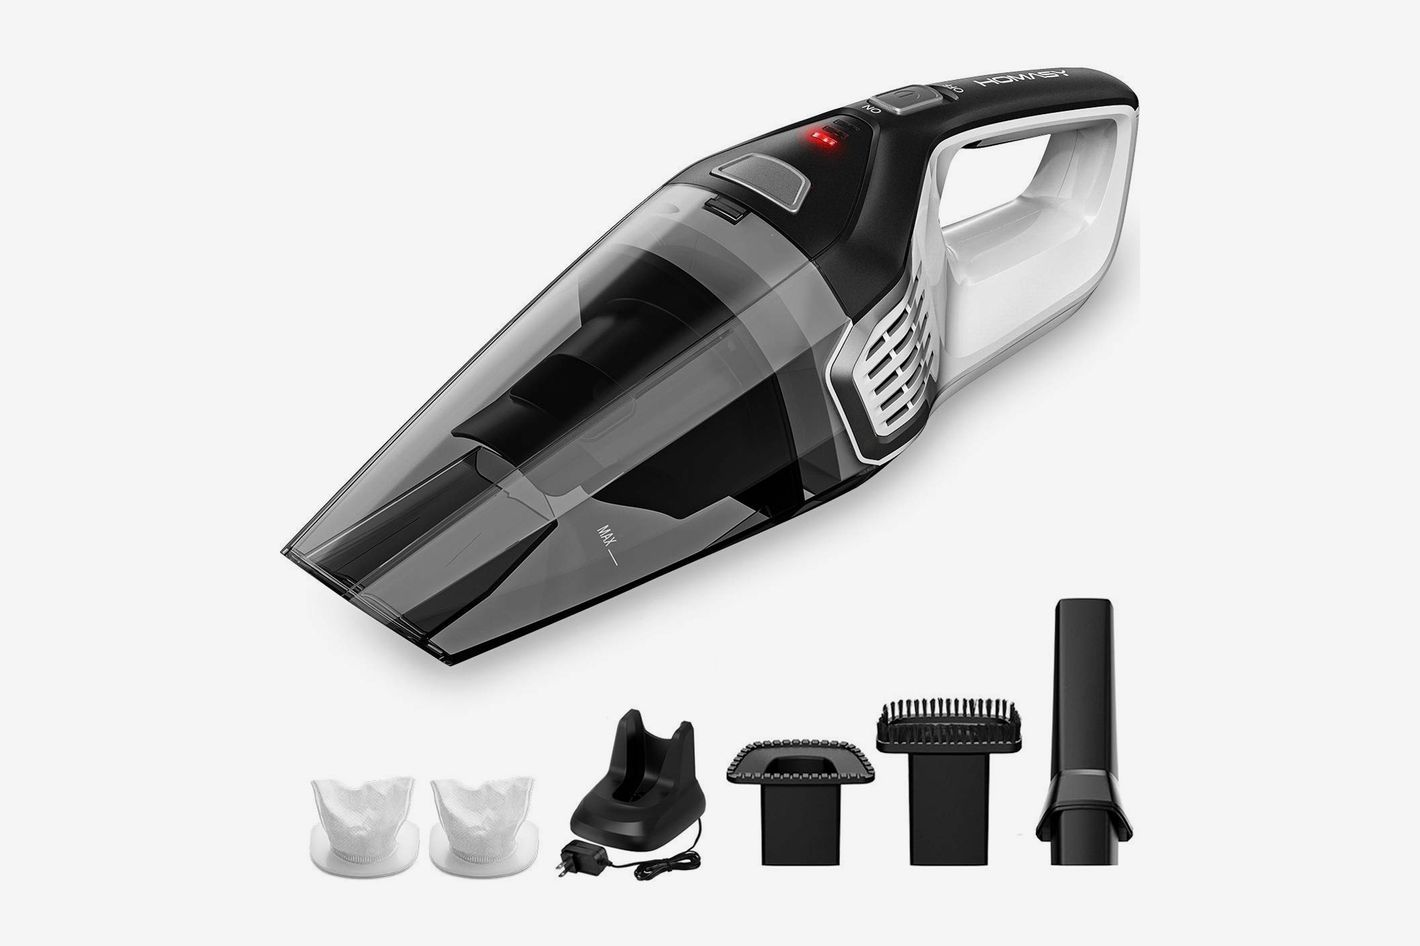 15 best handheld vacuums 2019 dyson black decker more. Black Bedroom Furniture Sets. Home Design Ideas